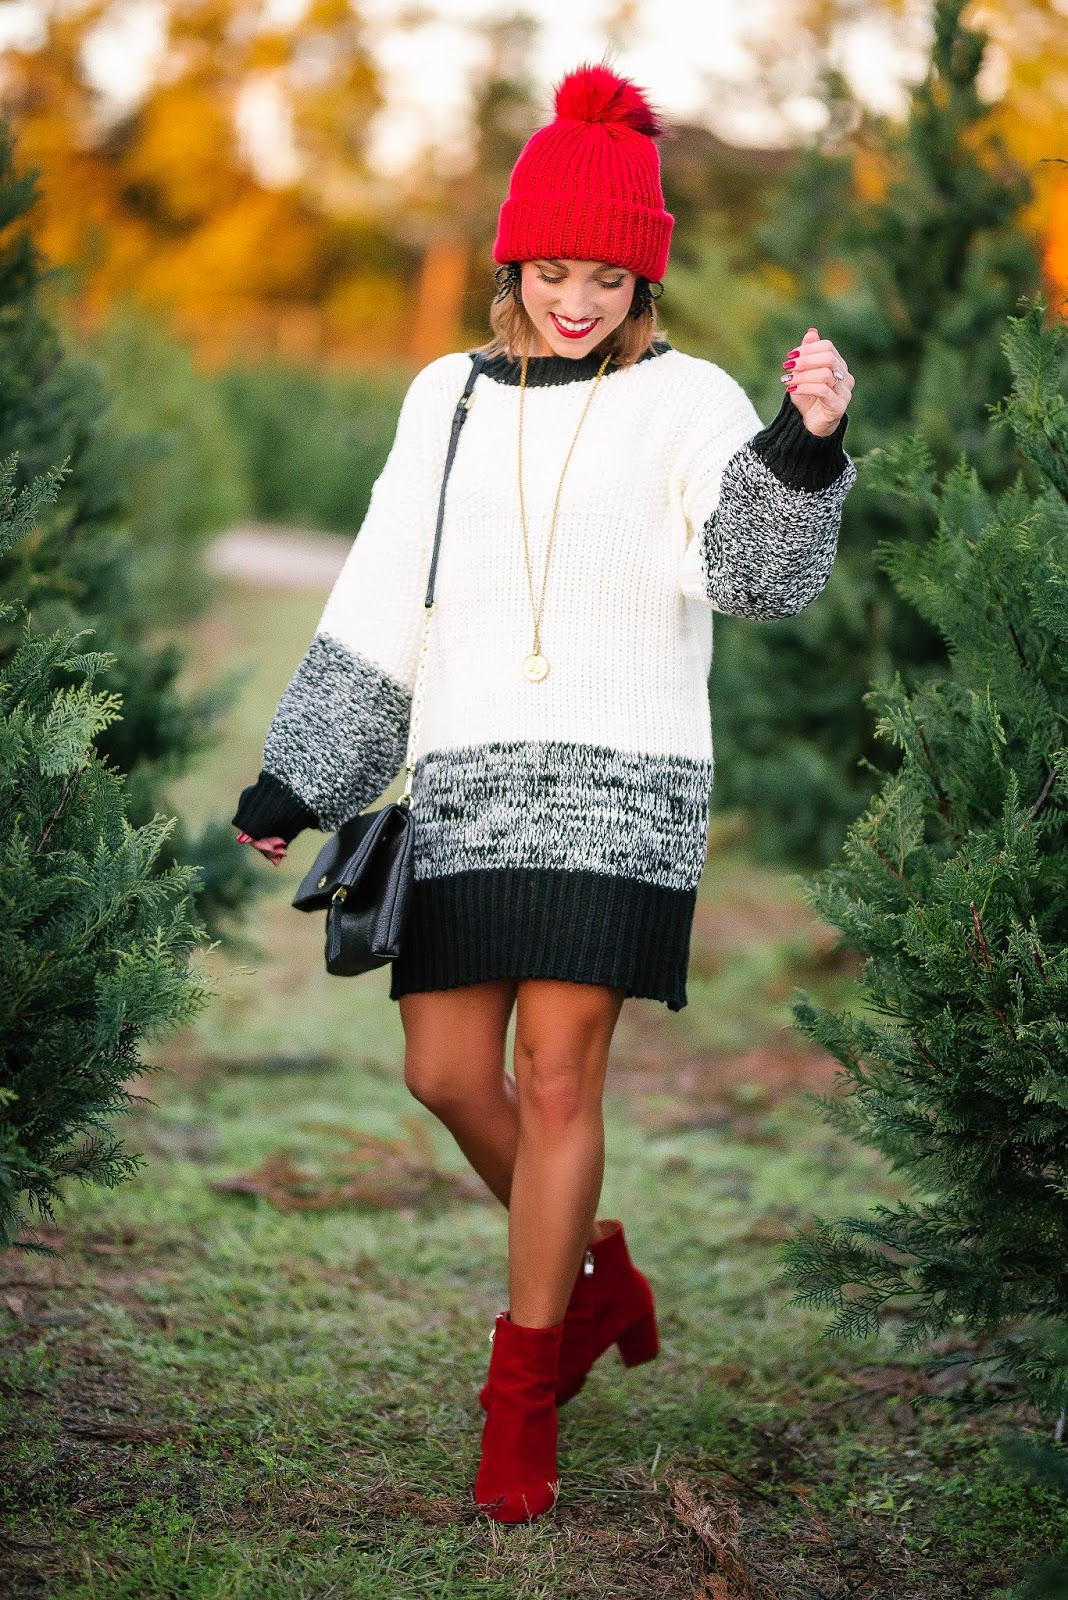 Under $50 Black & White Sweater Dress With Red Accessories - Something Delightful Blog